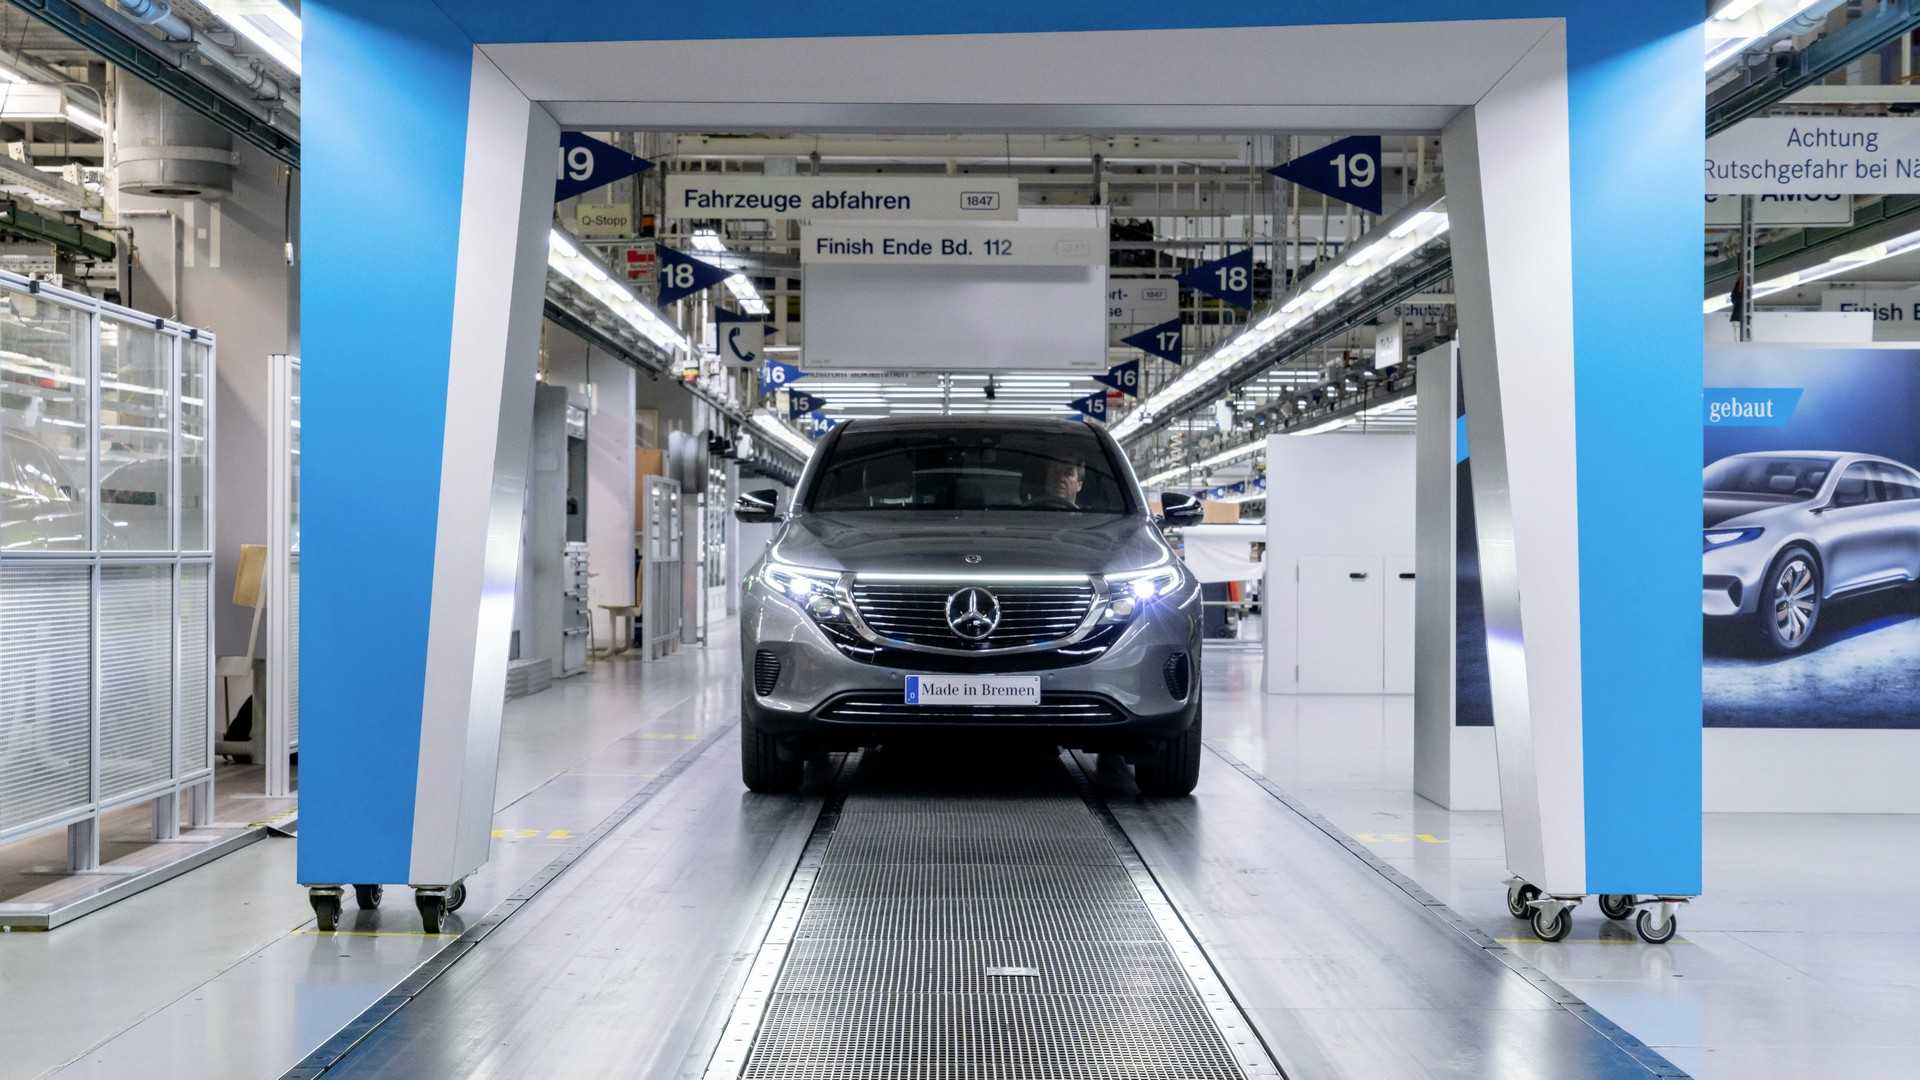 Mercedes-Benz To Produce 100 EQC Per Day: Double That In 2020